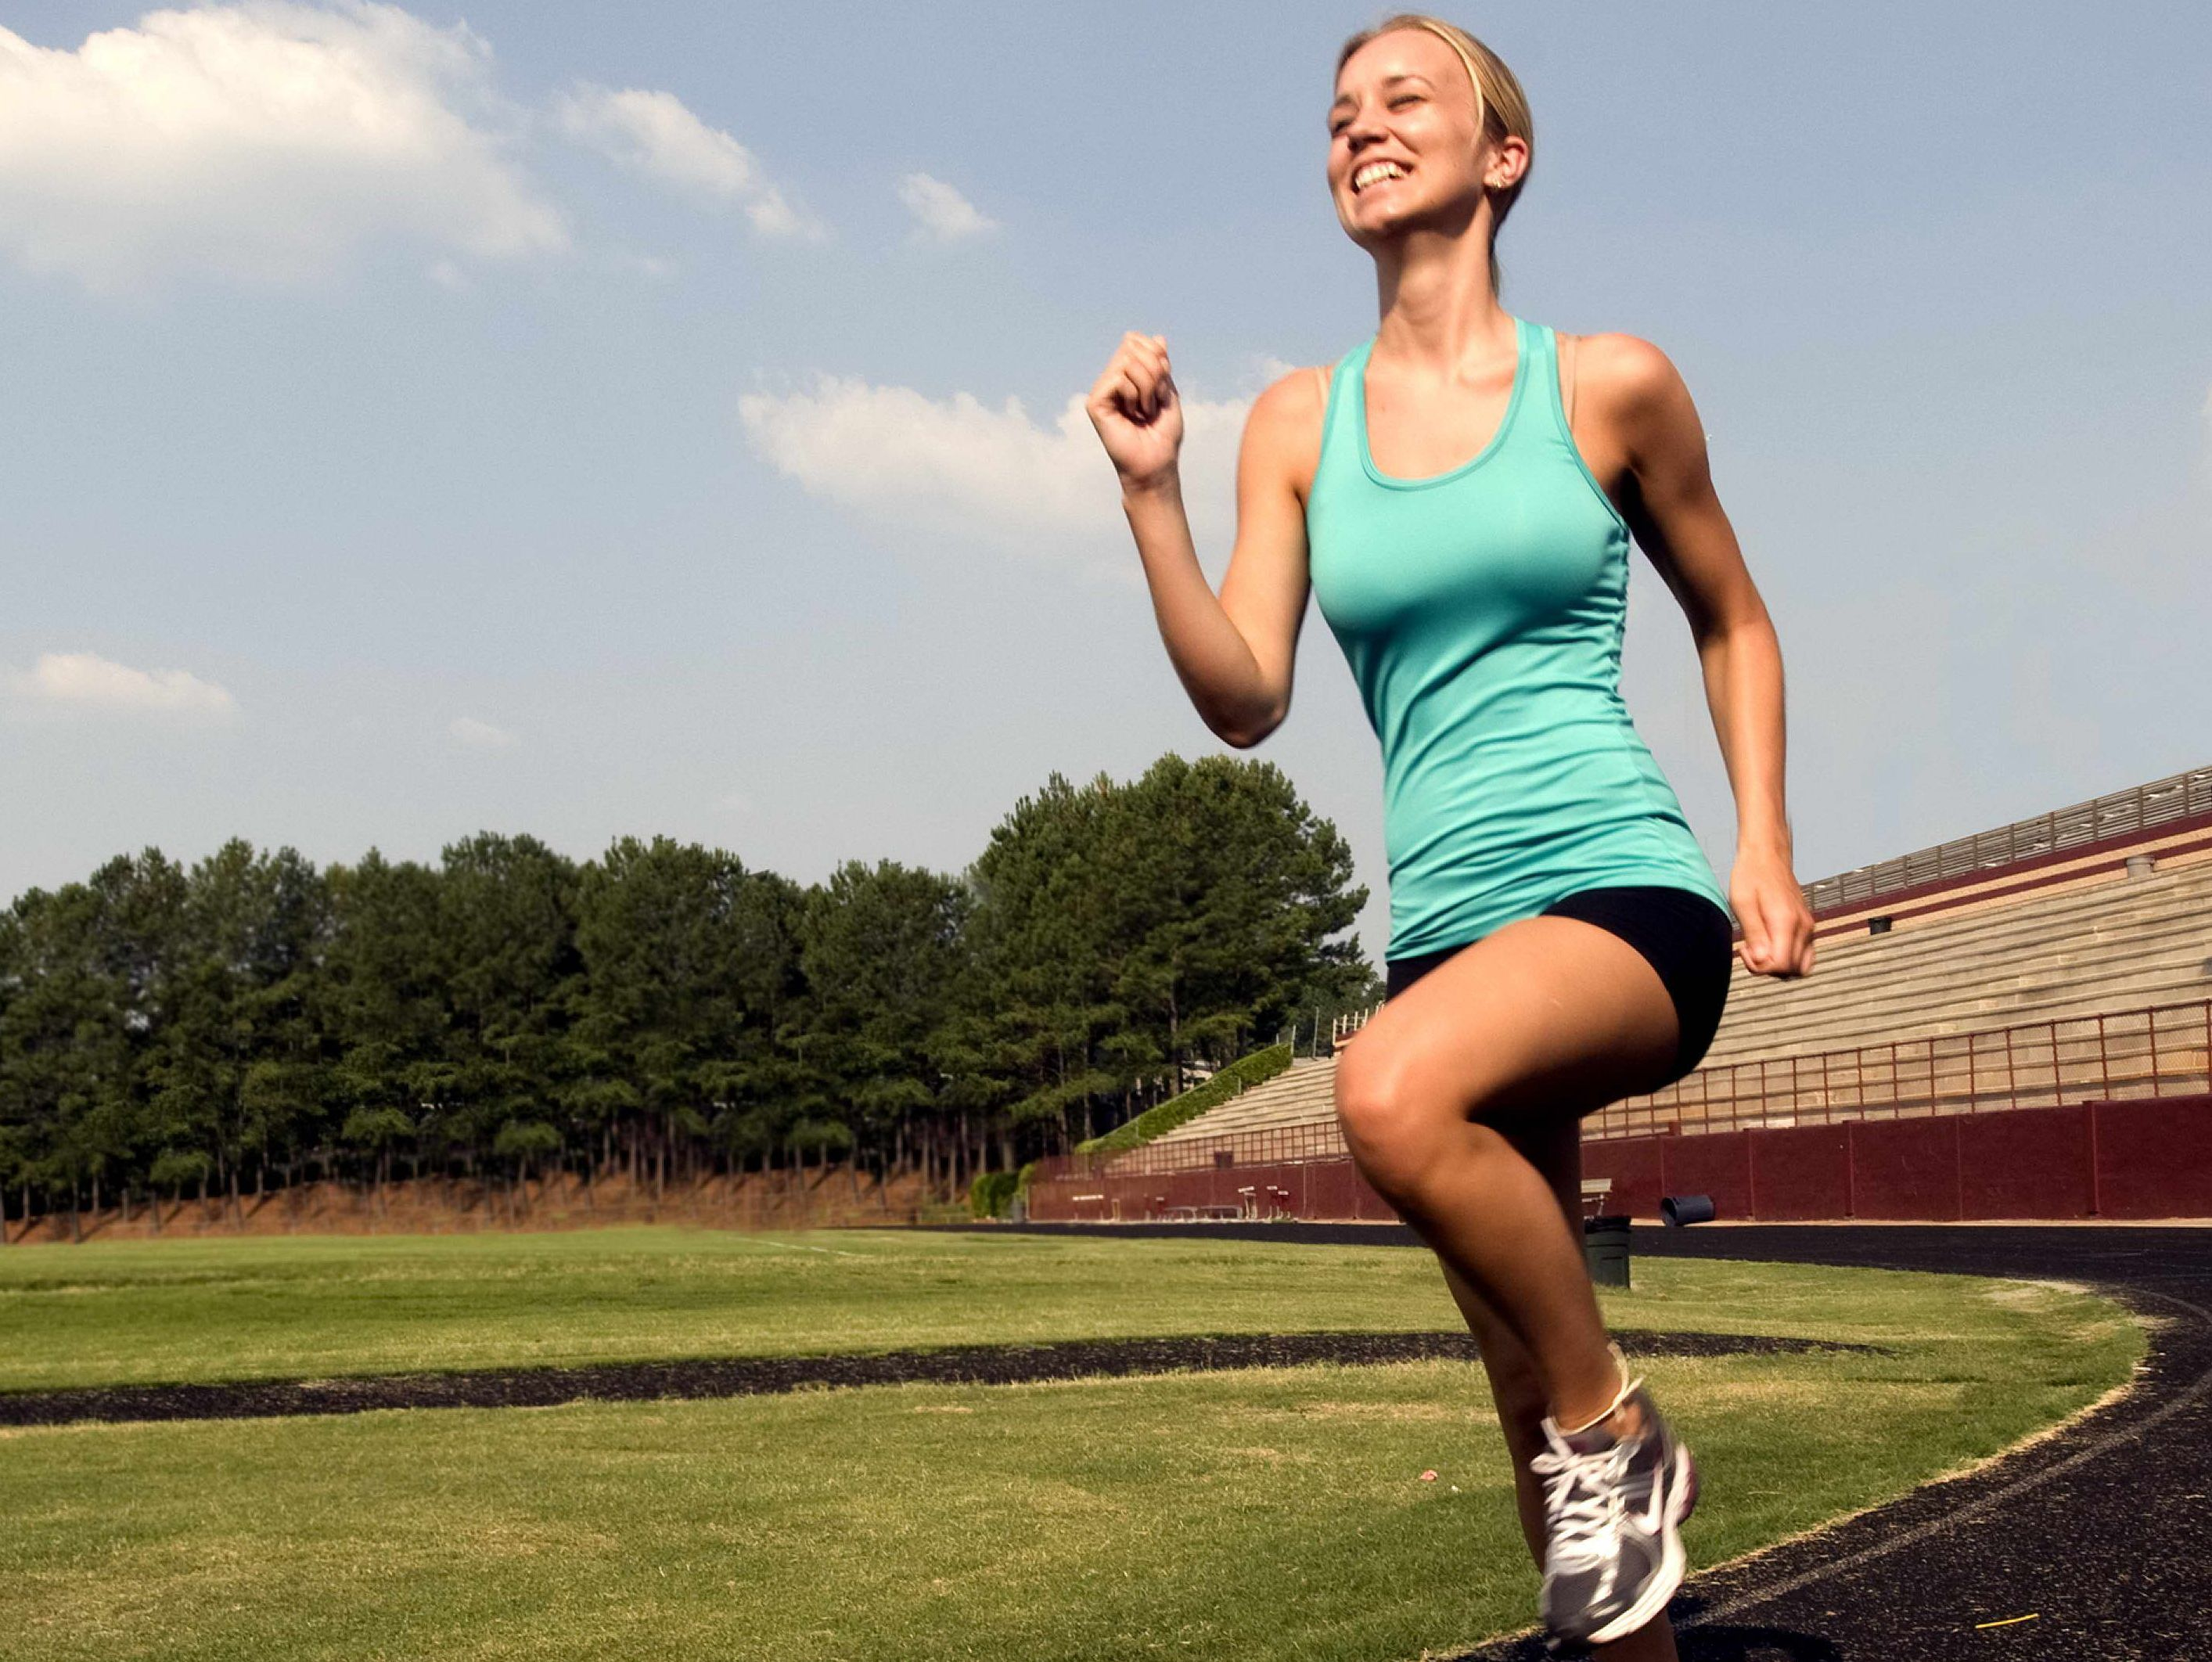 smiling-young-woman-was-jogging-with-a-high-legged-technique-e1430133662912